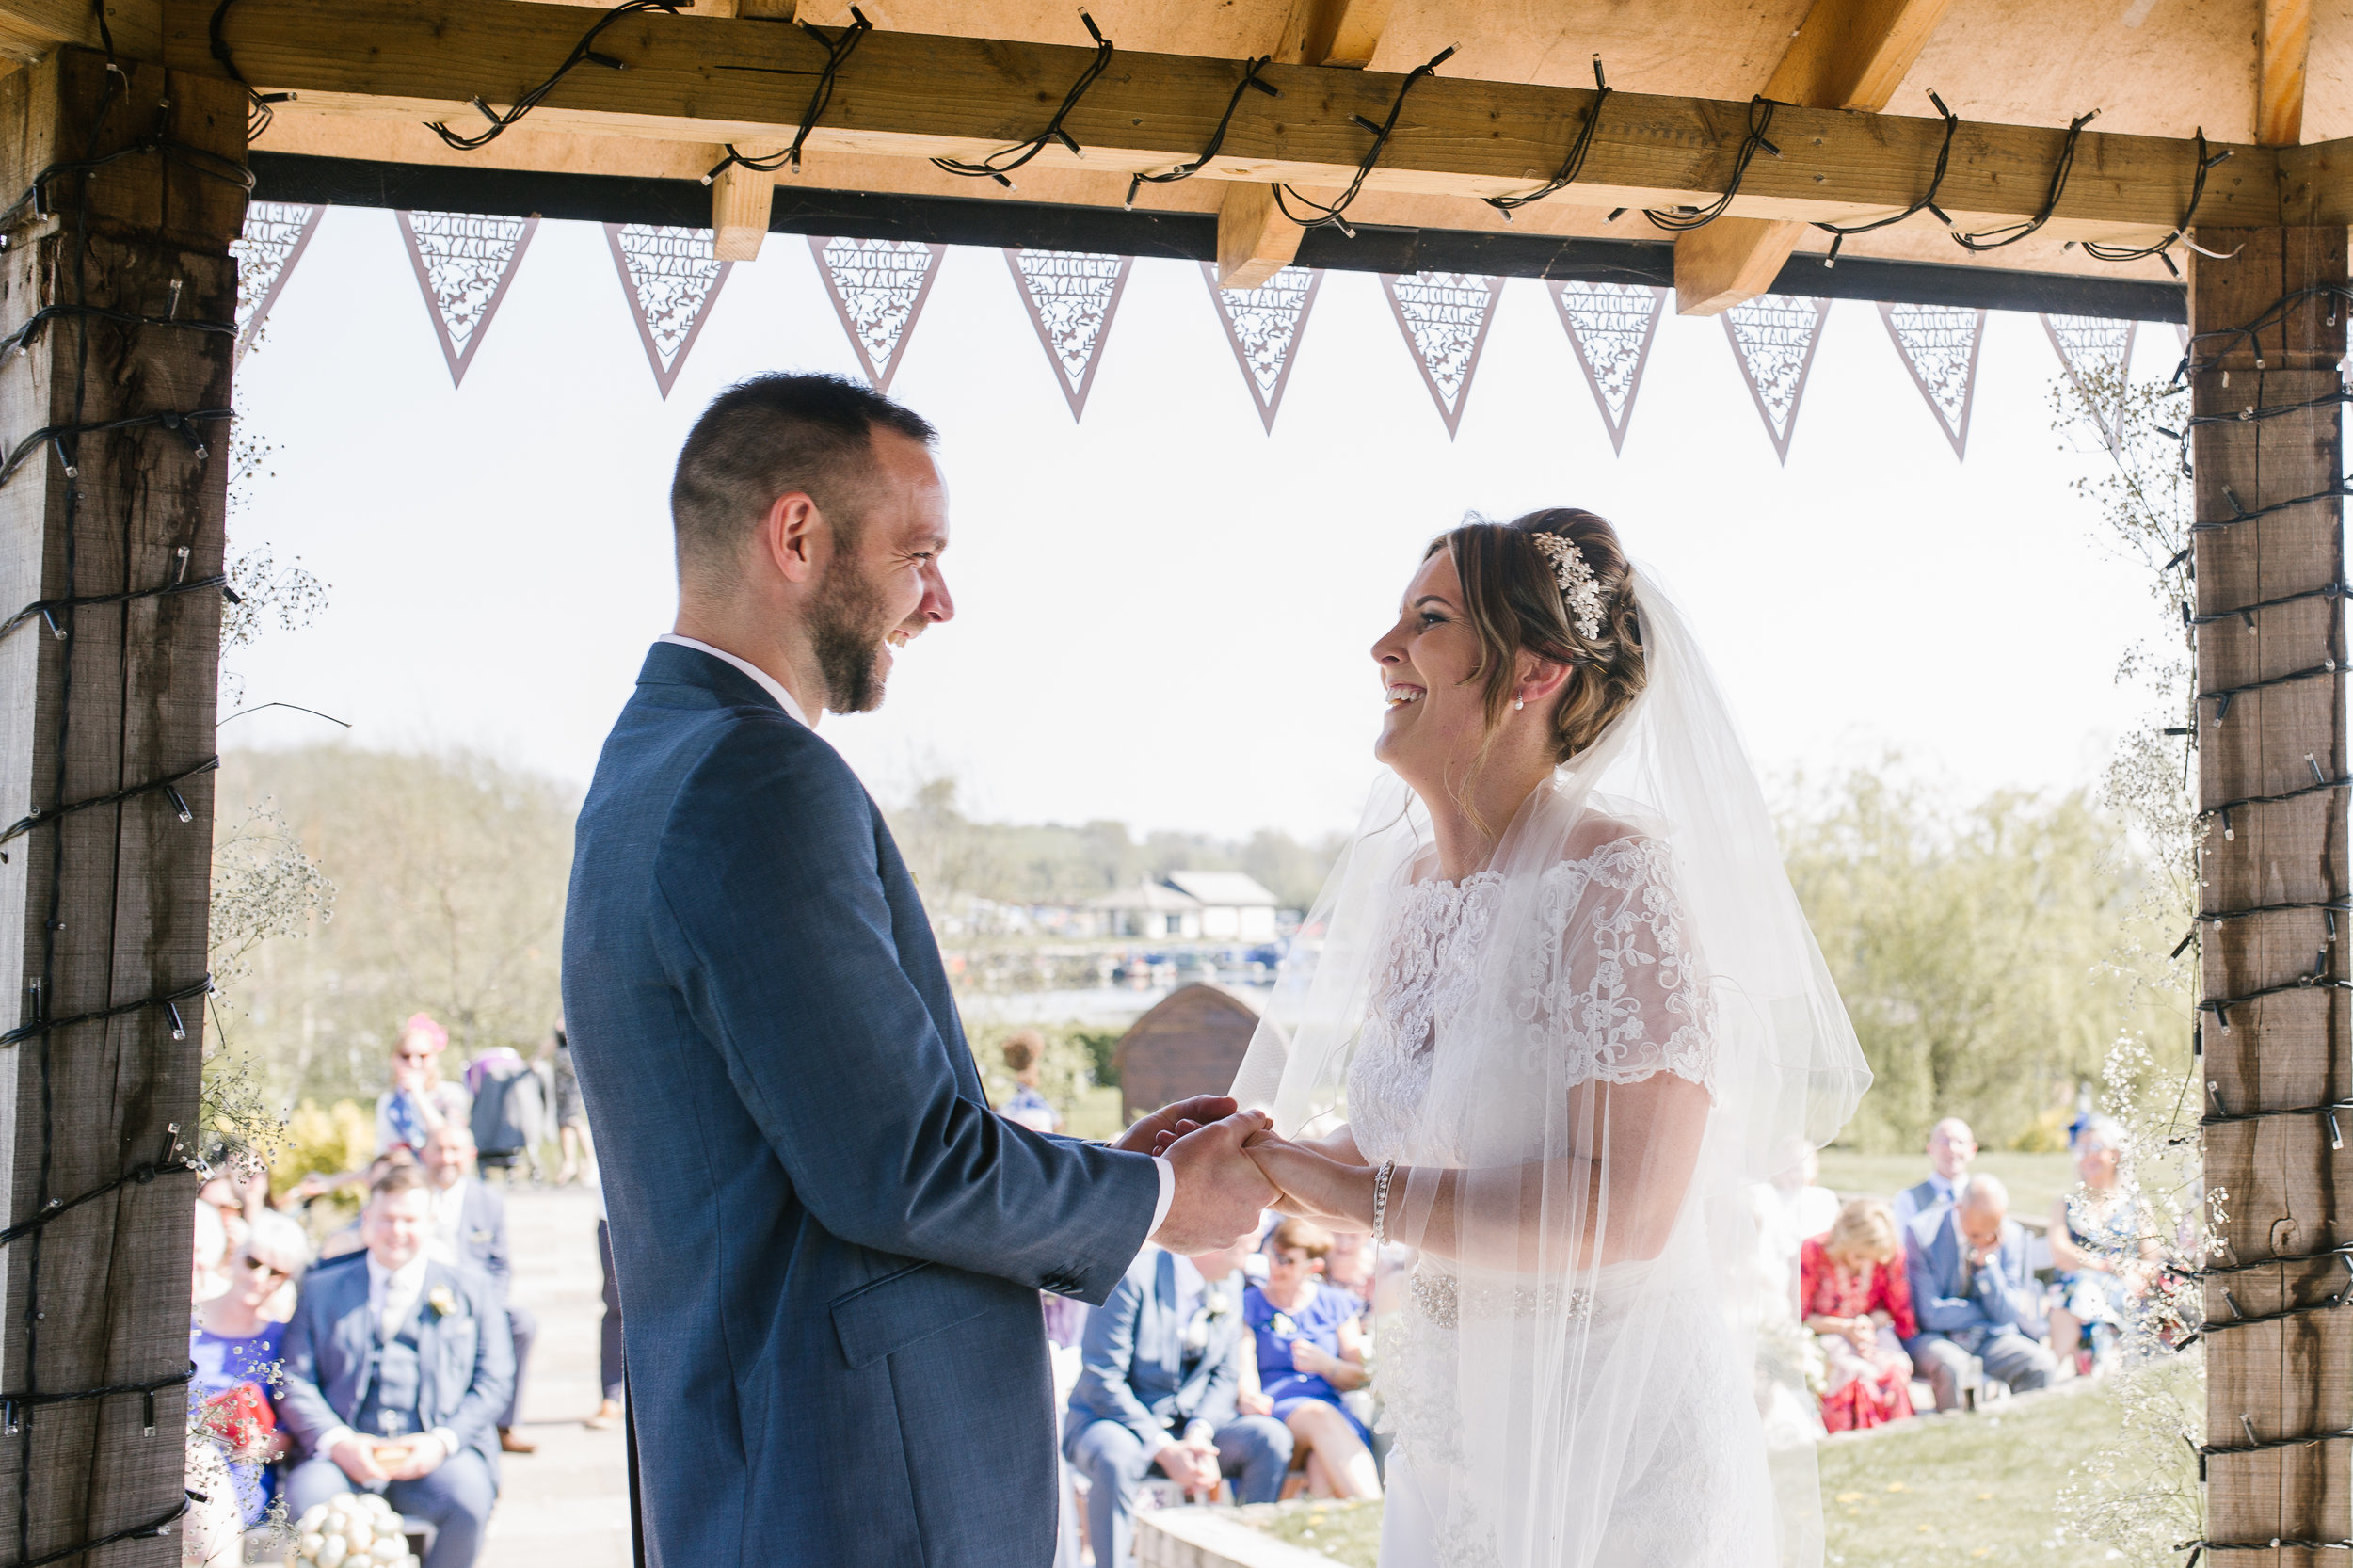 bride and groom becoming husband and wife at their outdoor summer ceremony